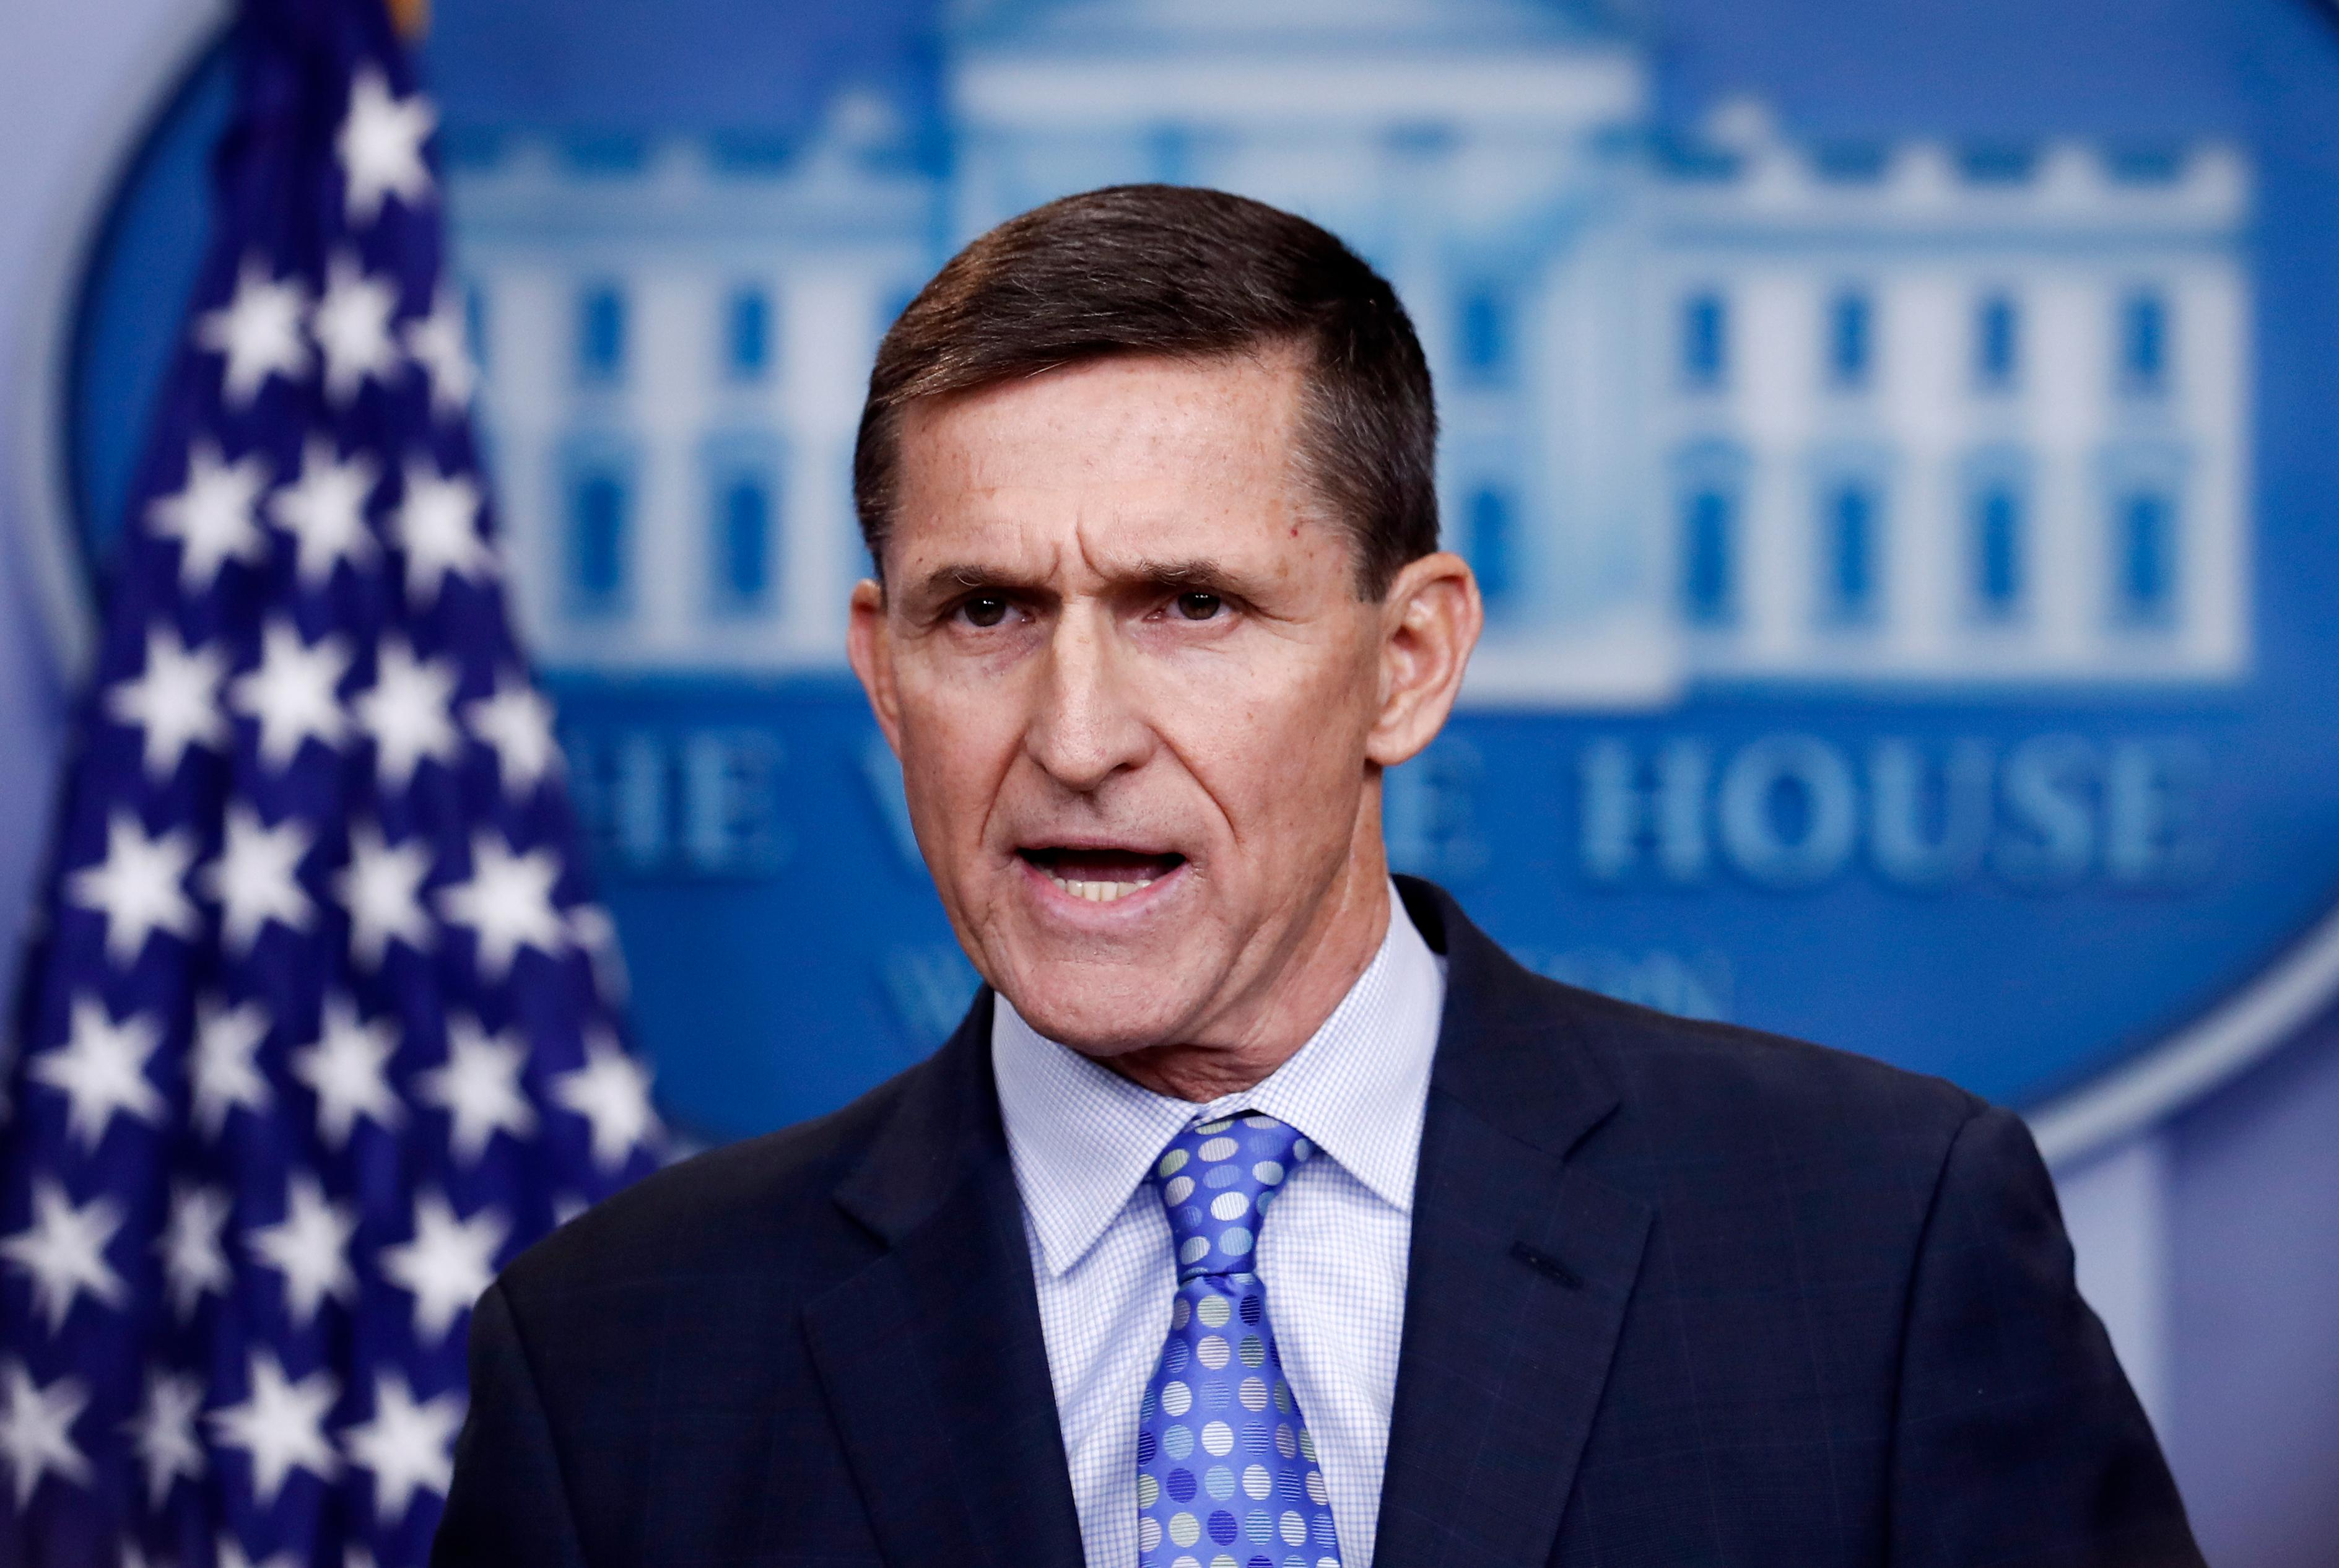 FILE - In this Feb. 1, 2017 file photo, National Security Adviser Michael Flynn speaks during the daily news briefing at the White House, in Washington.{ } (AP Photo/Carolyn Kaster)